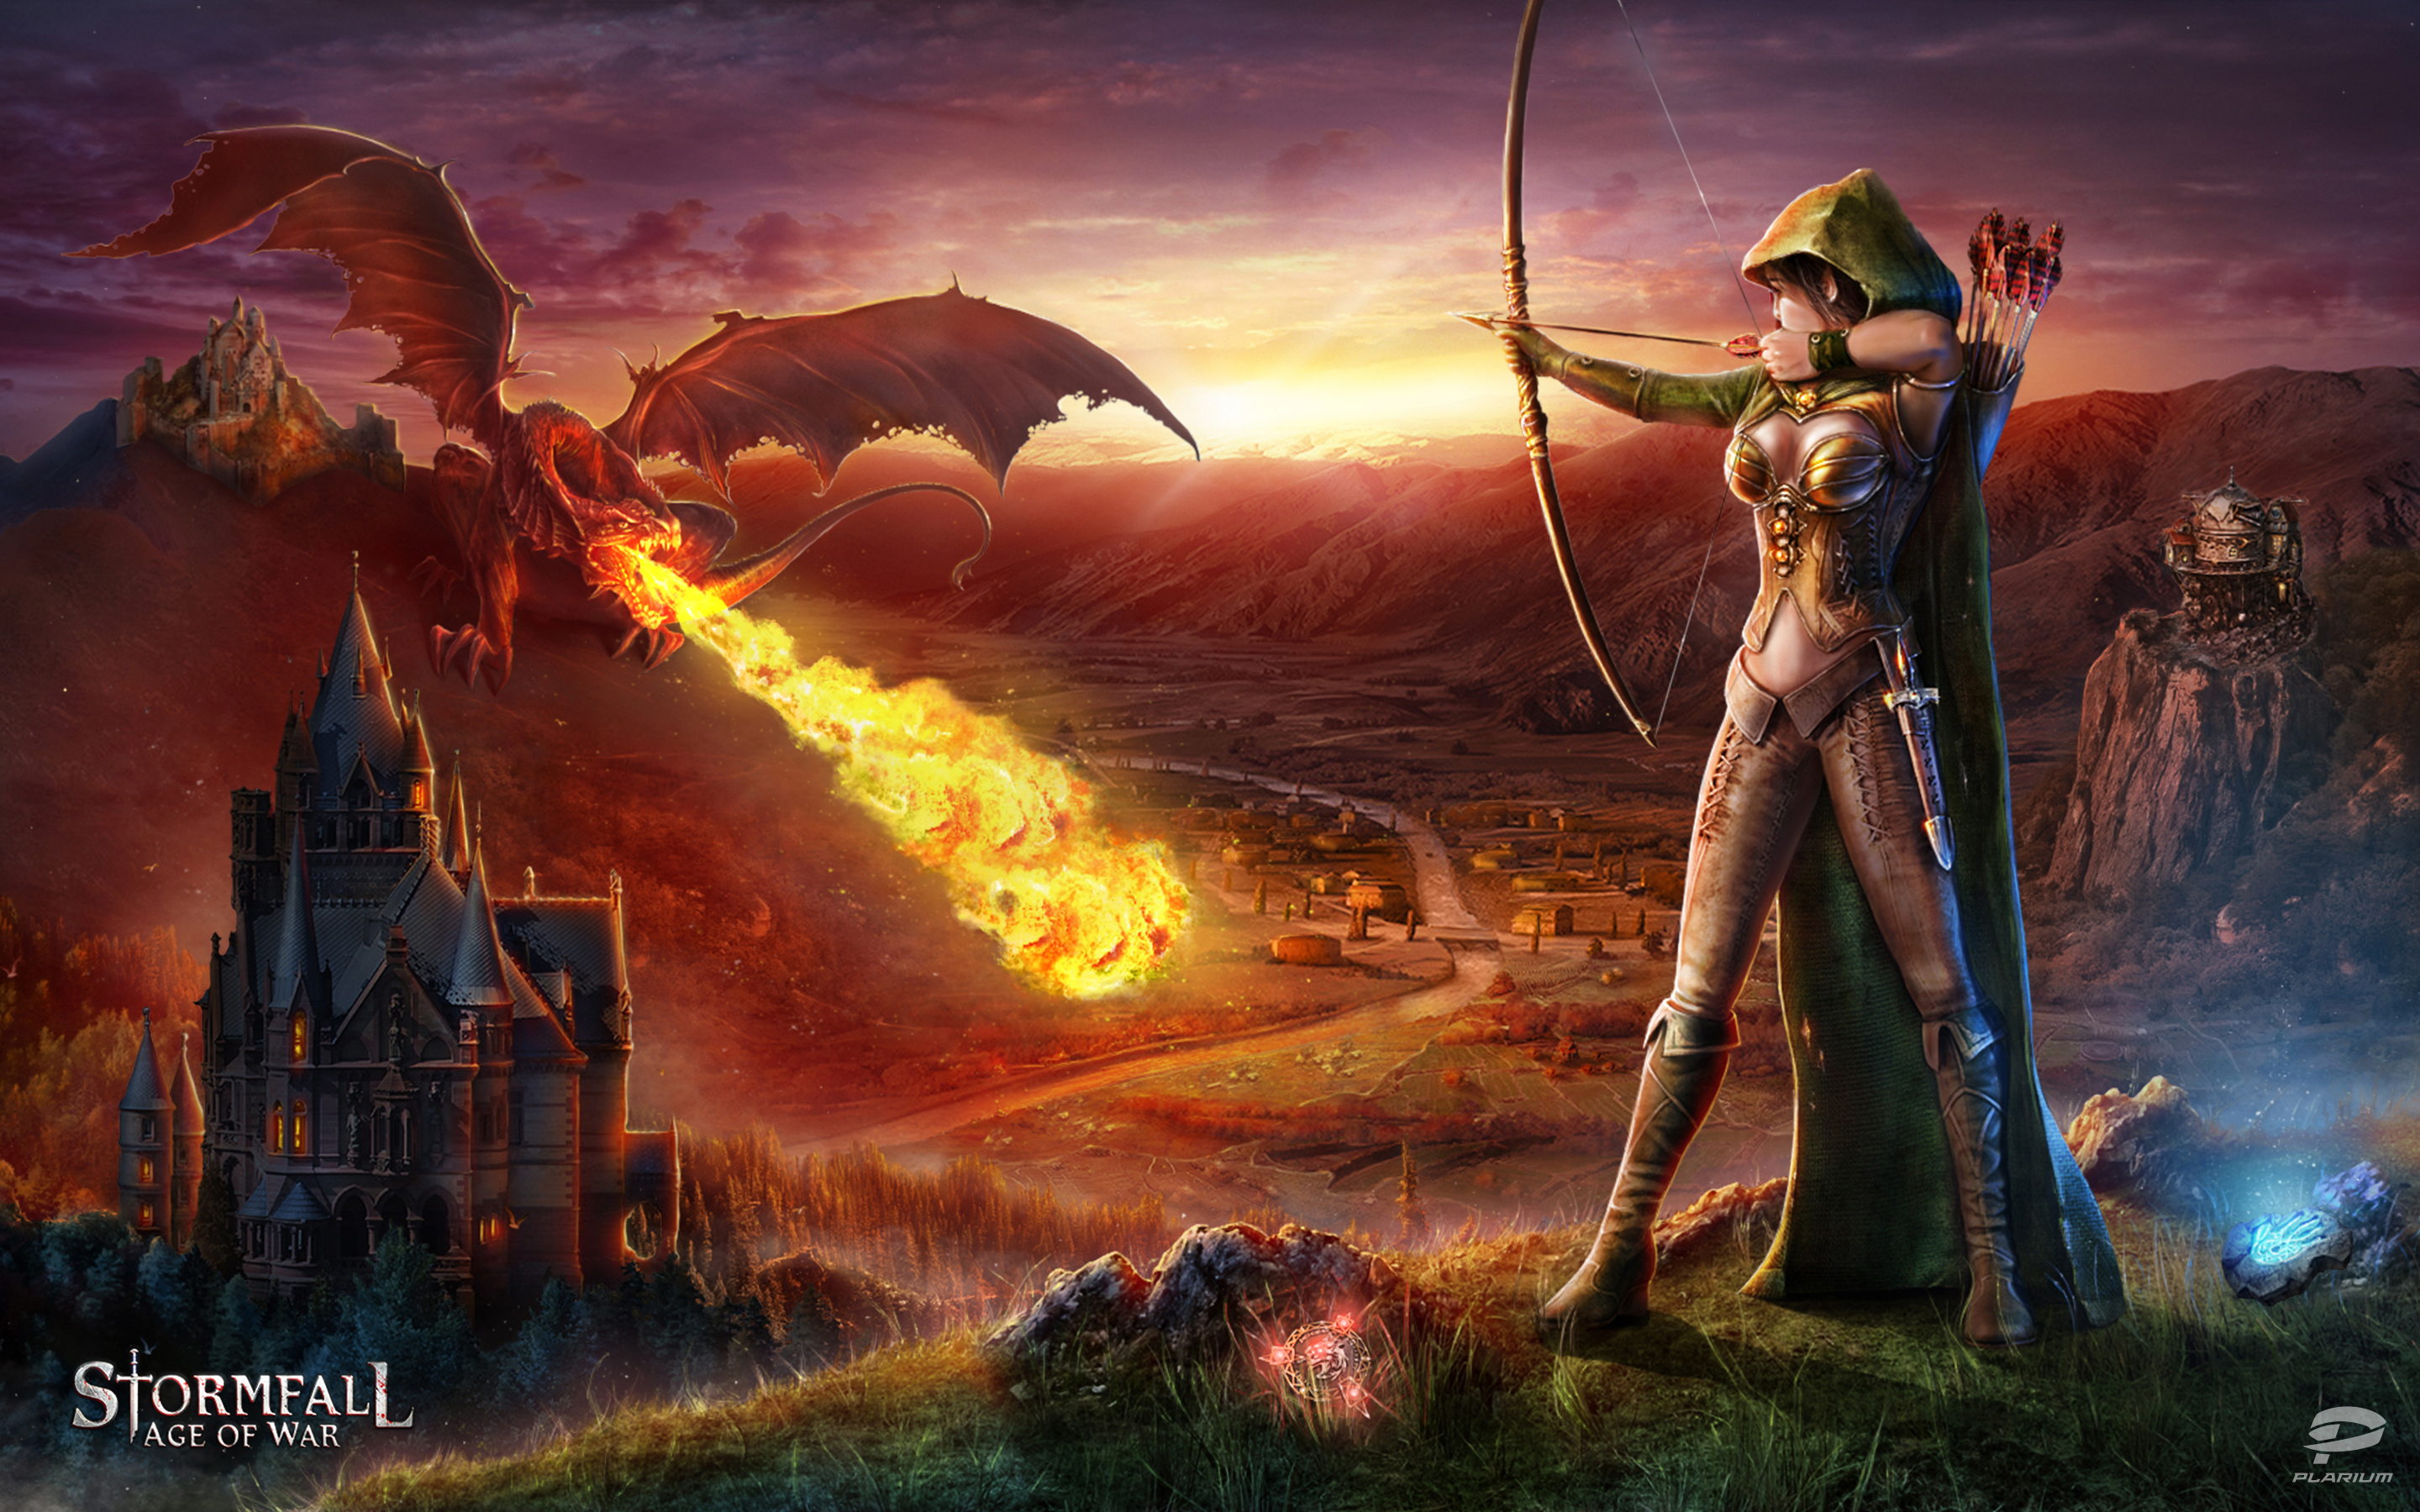 Fall Wallpaper For Large Monitors Stormfall Age Of War Hd Wallpaper Background Image